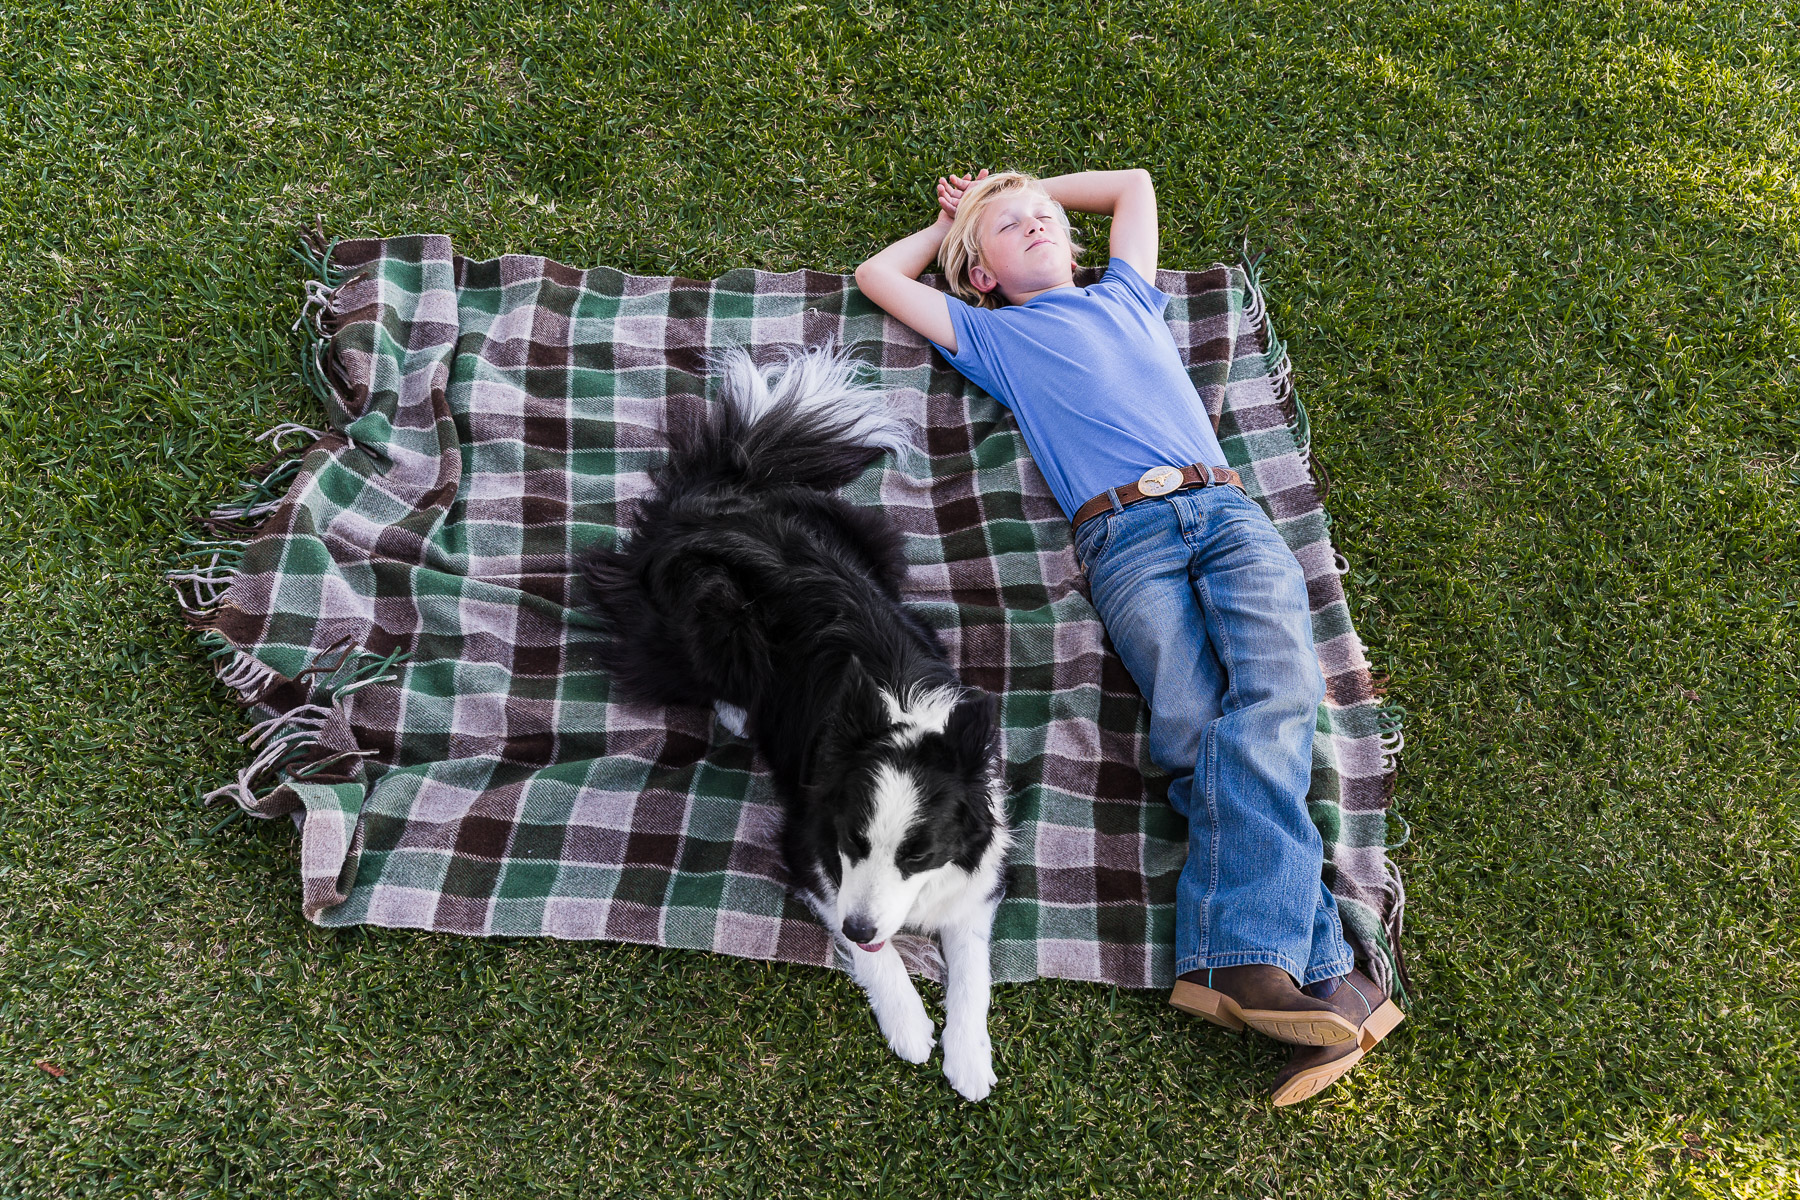 dog-photography-kid-with-dog-on-blanket.jpg